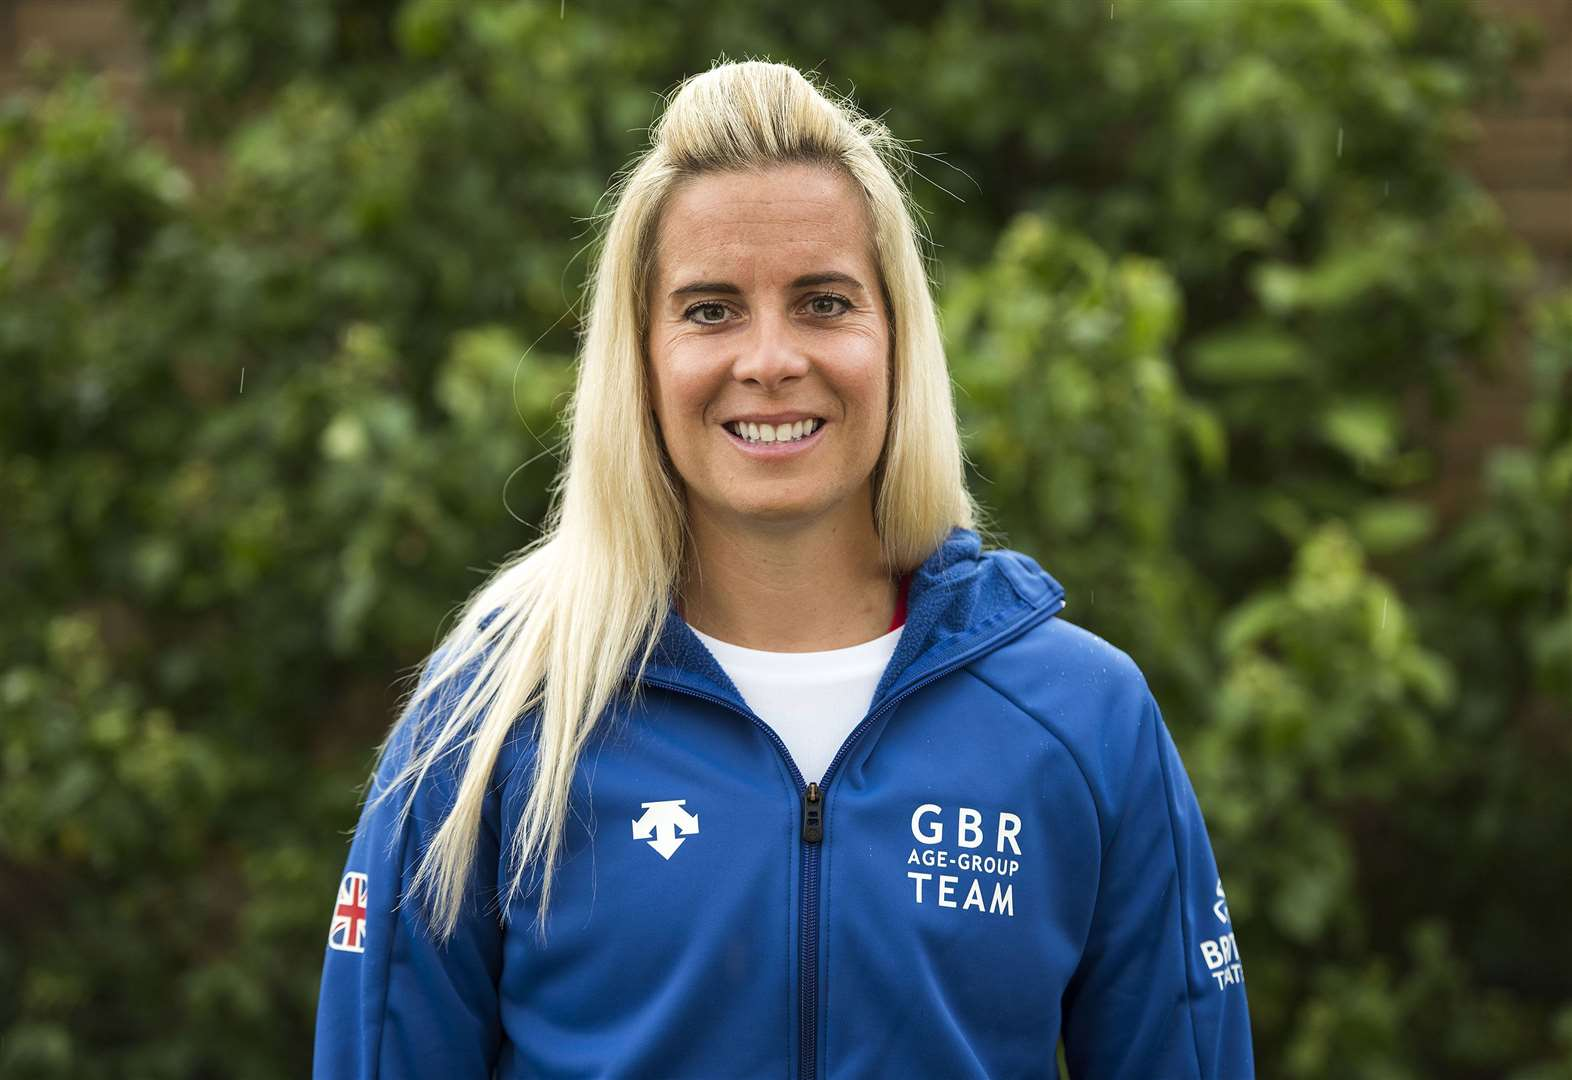 Di learned plenty from GB debut